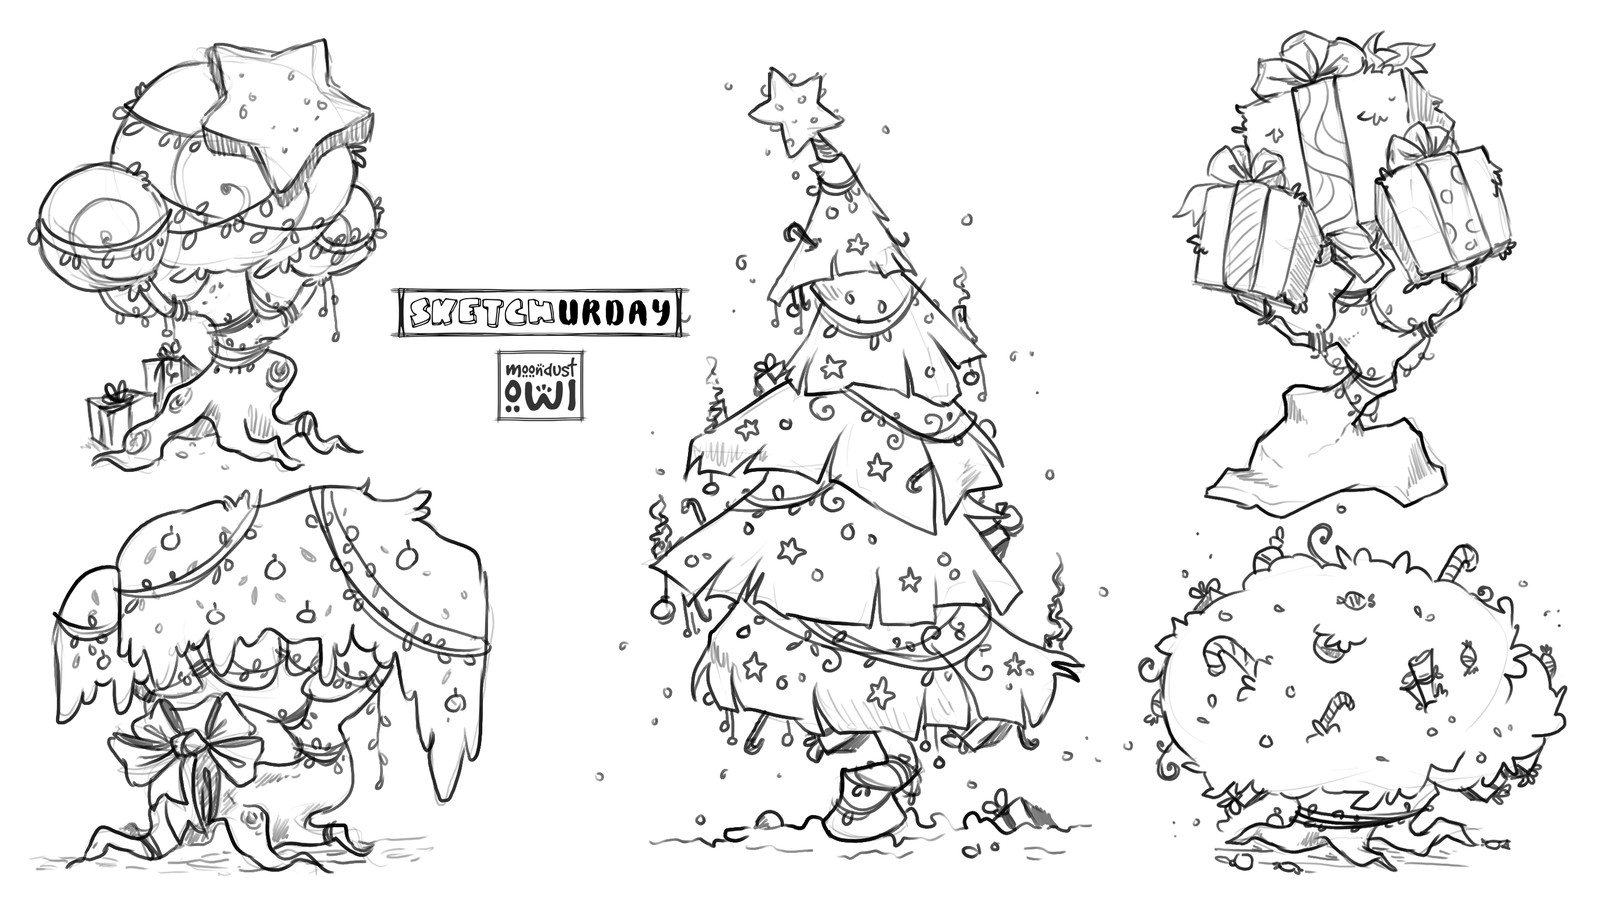 Saturday Concept / Practice sketching of fantasy Christmas trees